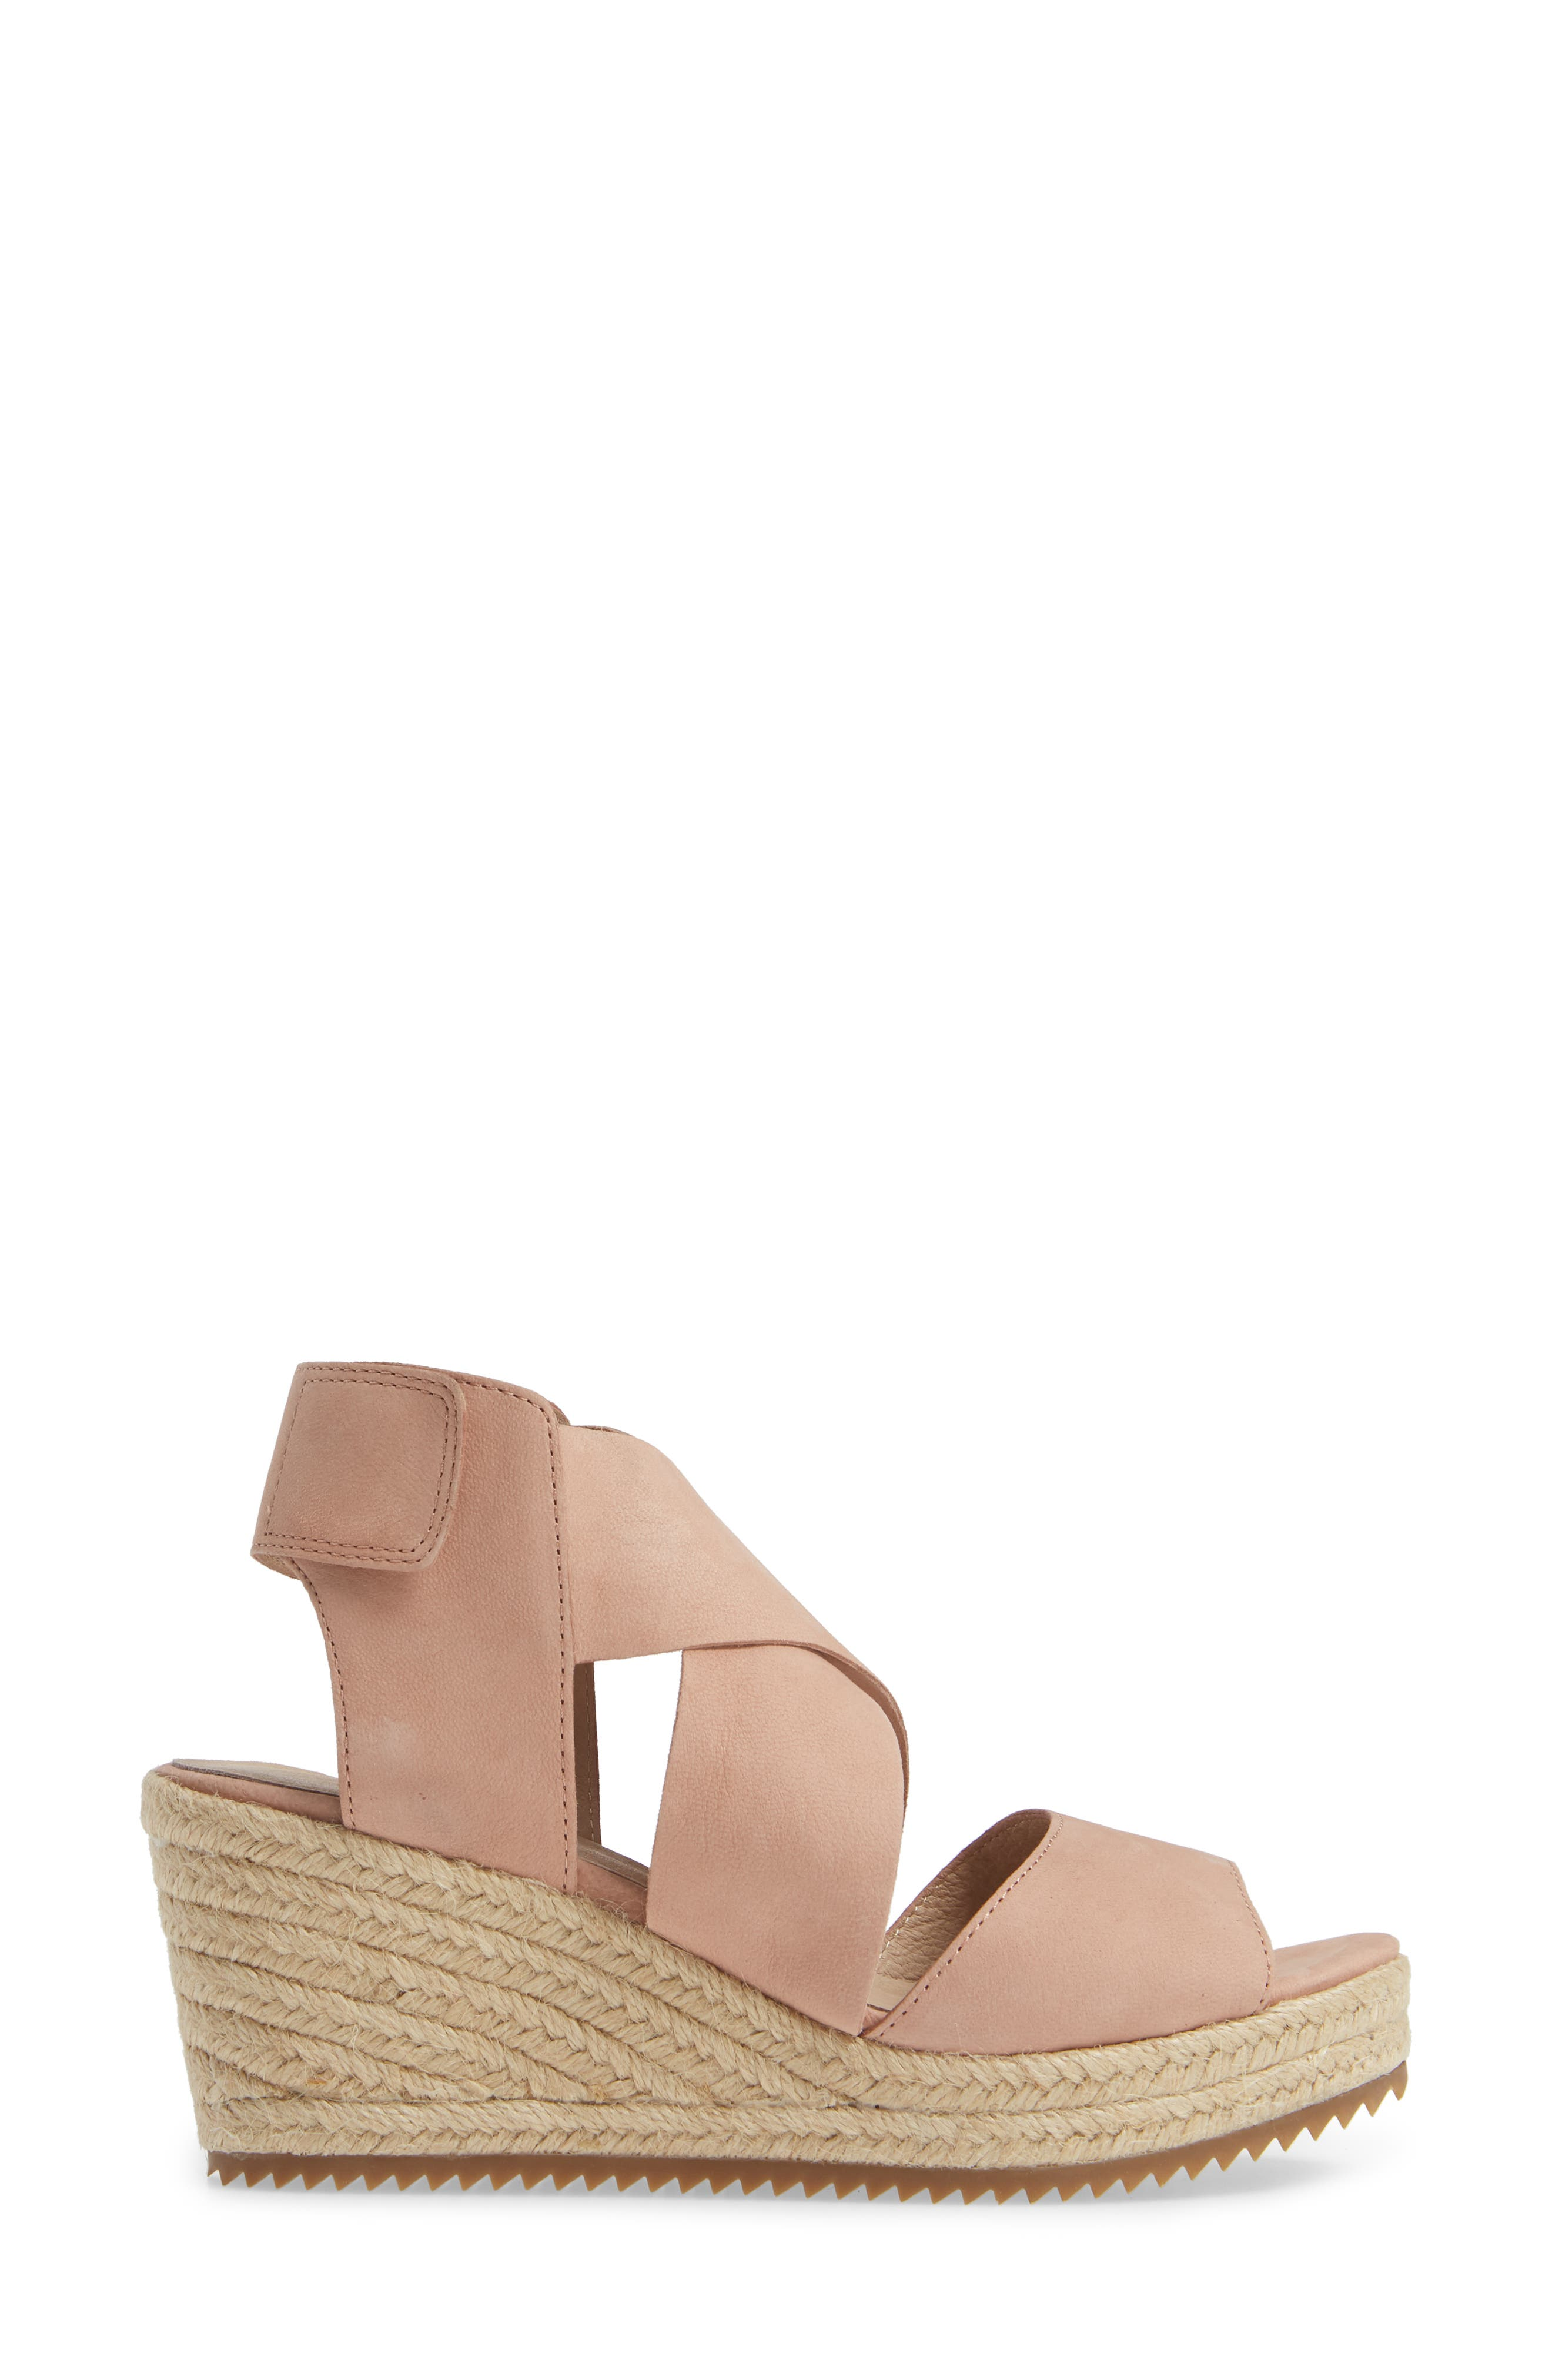 'Willow' Espadrille Wedge Sandal,                             Alternate thumbnail 3, color,                             TOFFEE CREAM NUBUCK